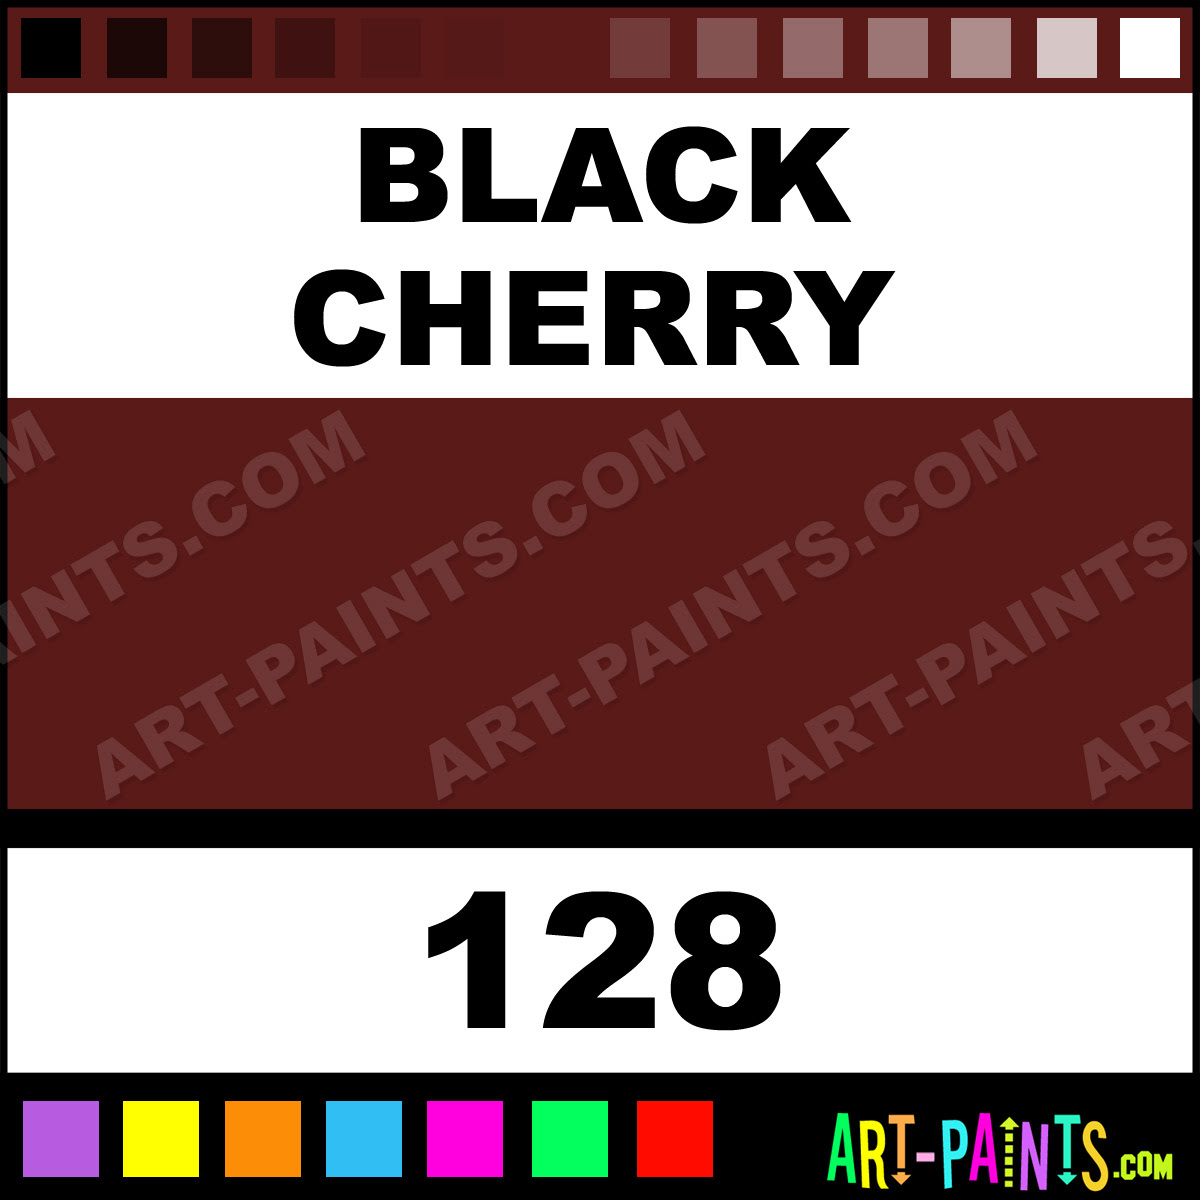 Black Cherry Just For Flowers Spray Paints 128 Black Cherry